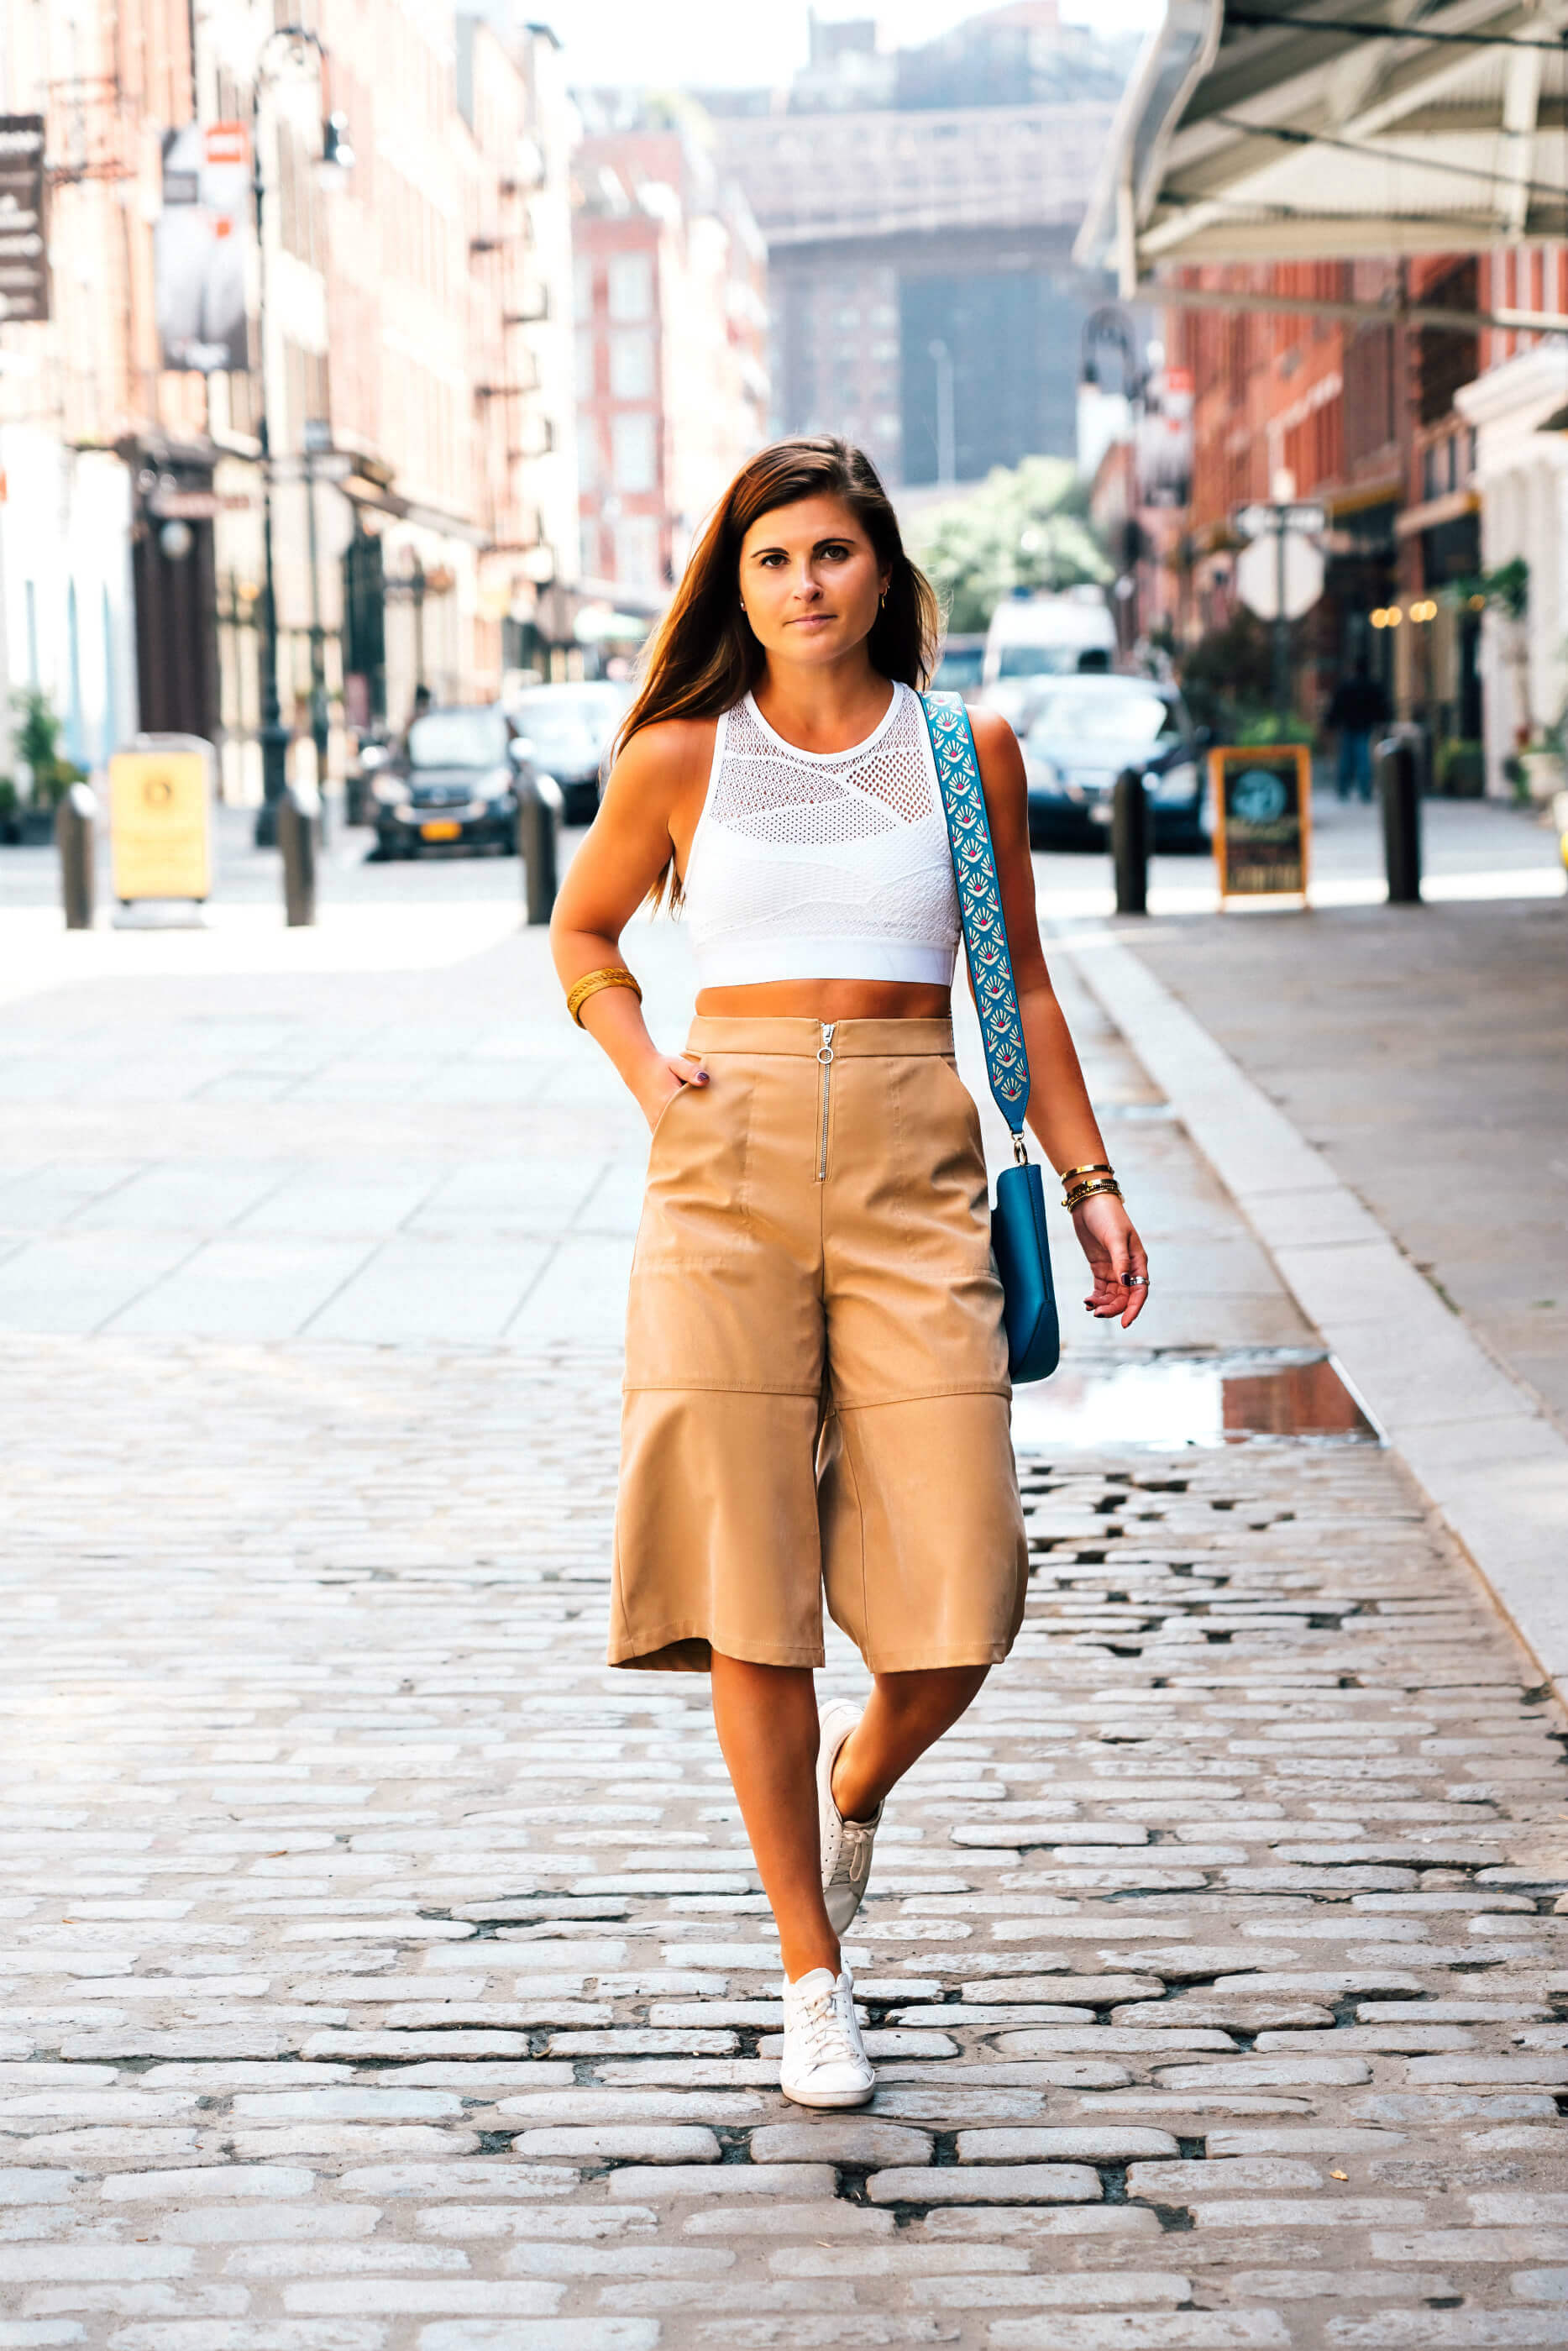 Next Step to Athleisure Outfit, Alala White Lace Cross Back Bra, ASOS tan culottes, Henri Bendel West 57th Mini Hobo Bag, Tilden of To Be Bright